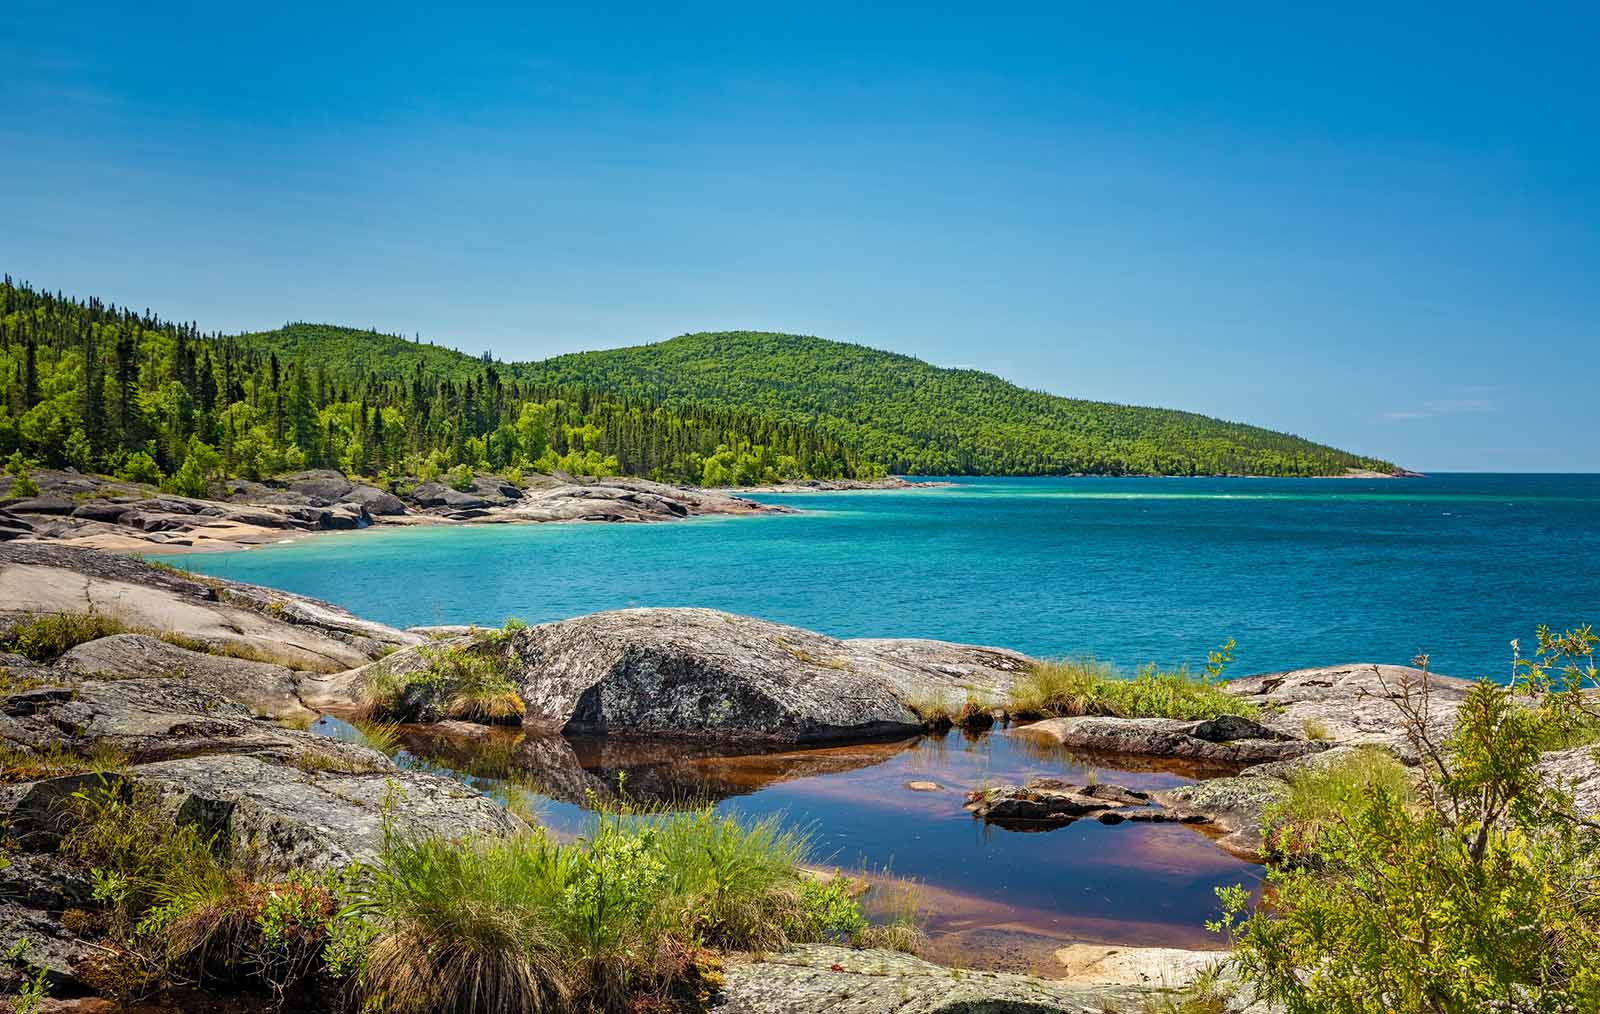 Under the Volcano Trail on the northern coast of Lake Superior at Neys Provincial Park, Ontario, Canada